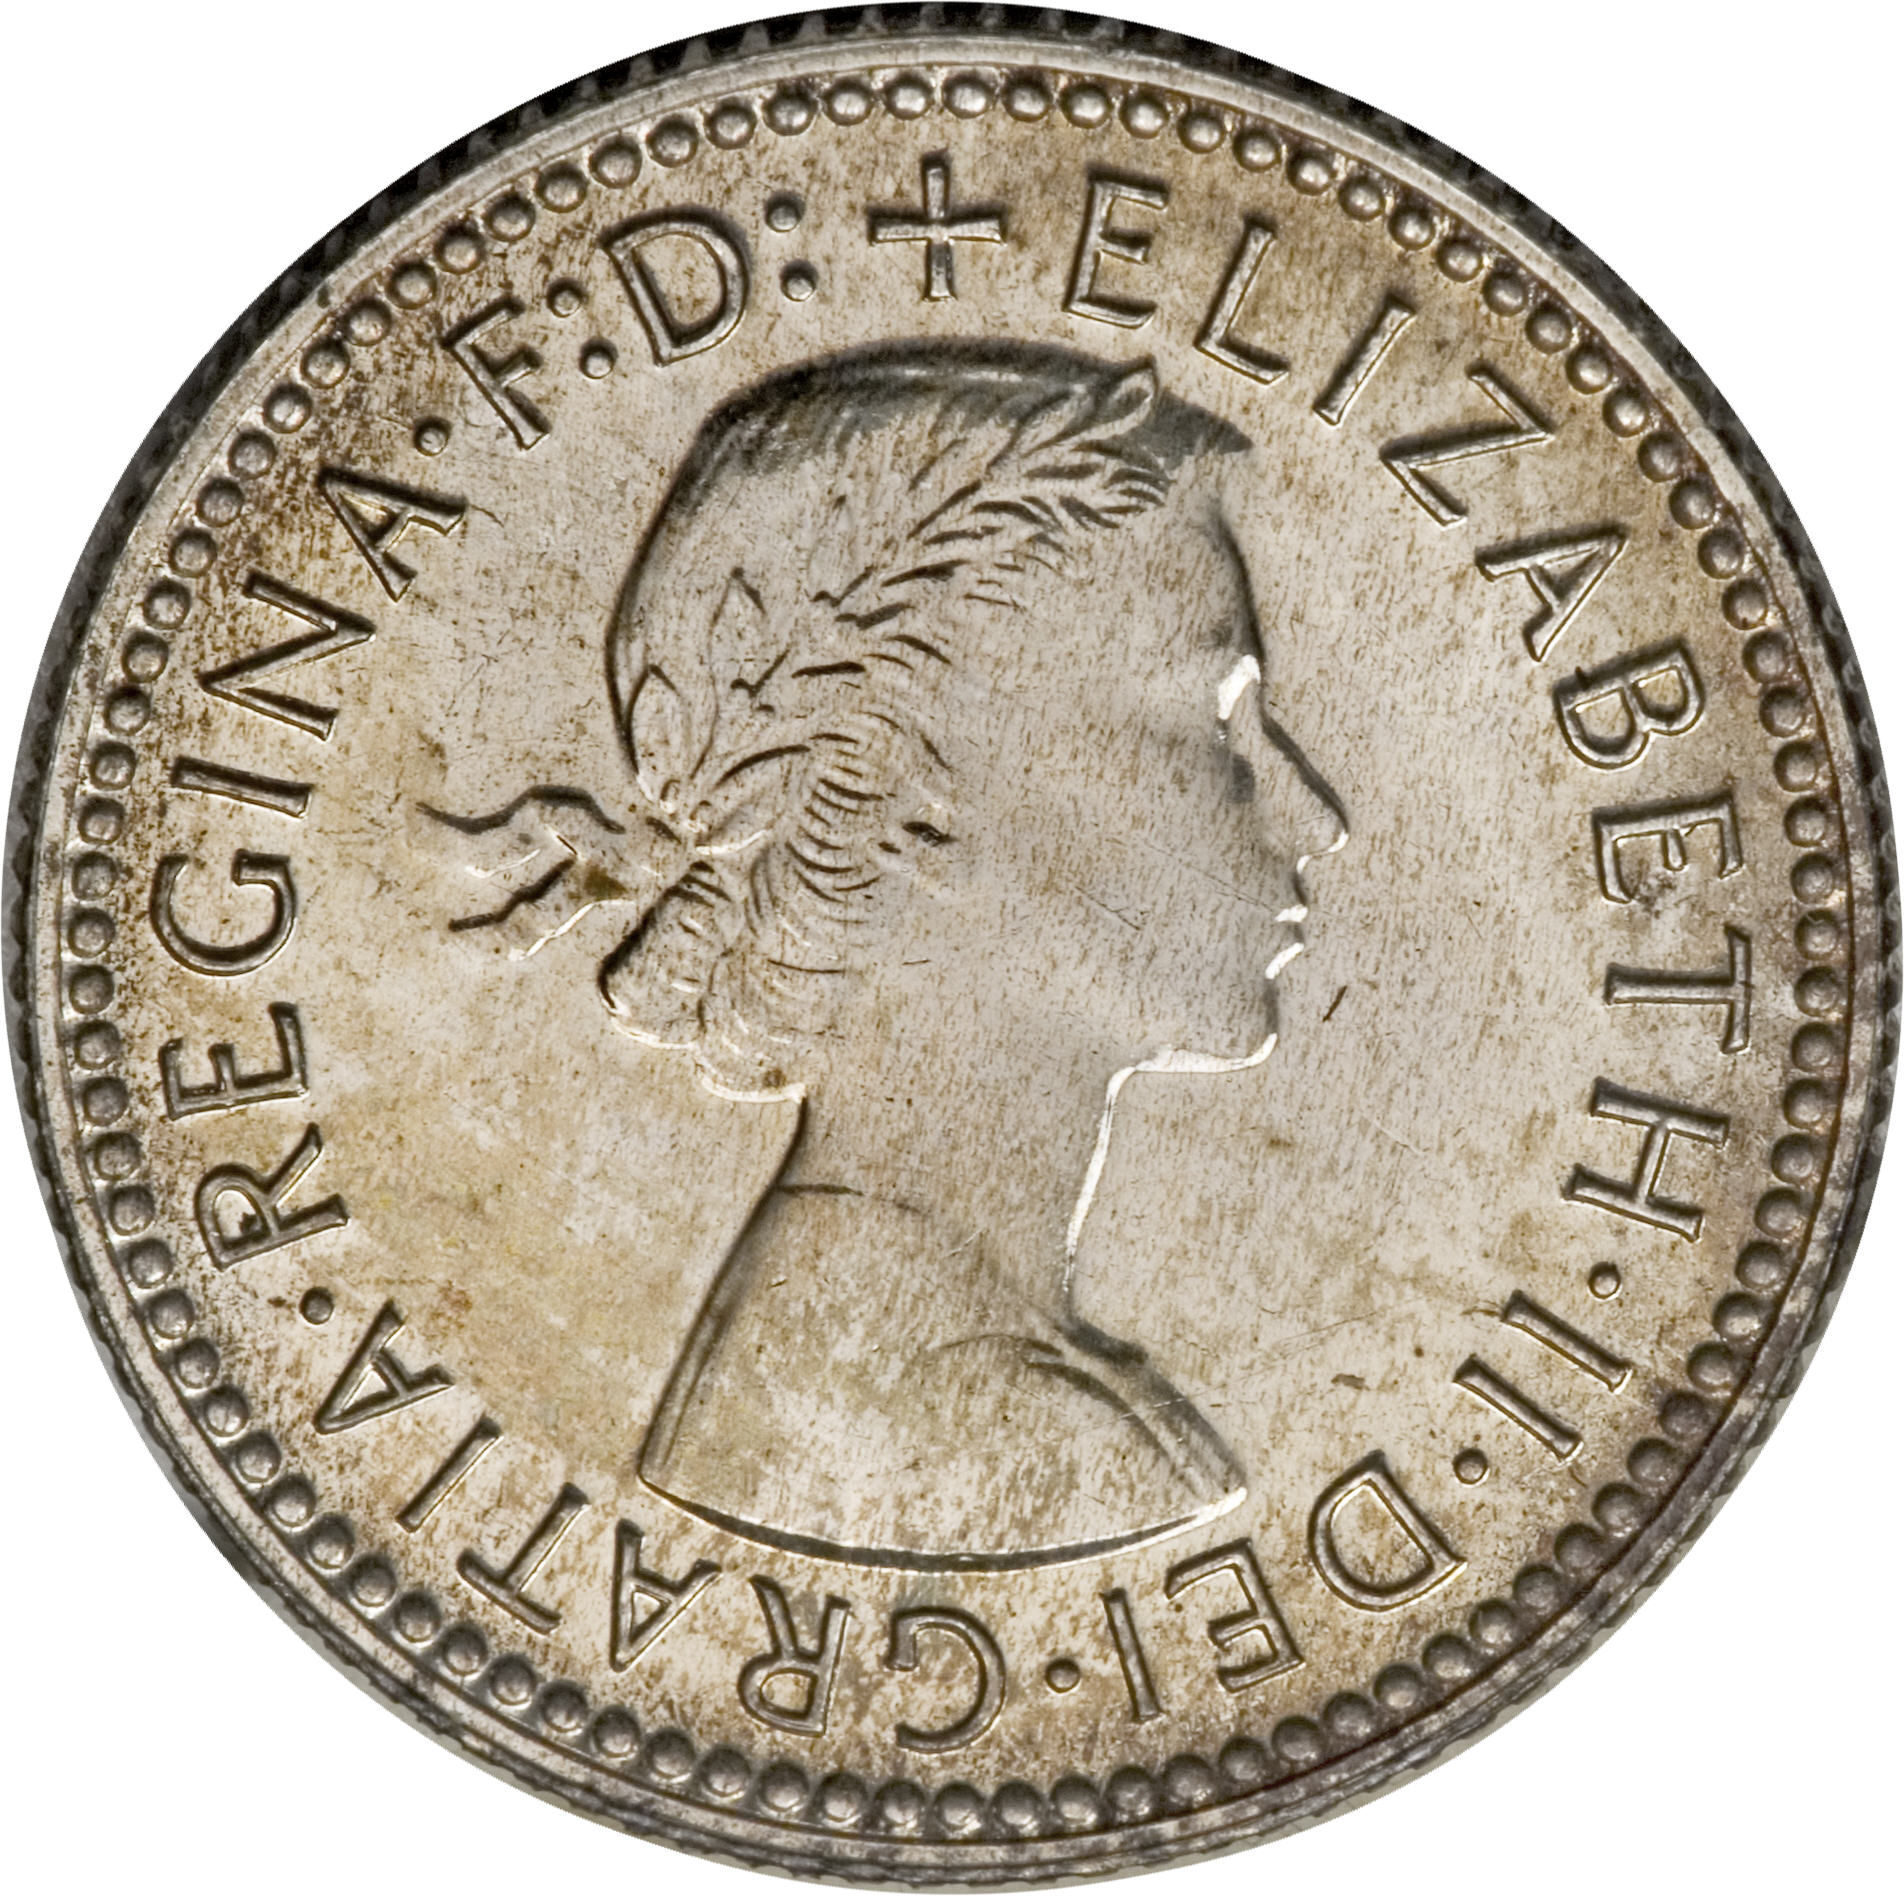 1965 shilling coin value